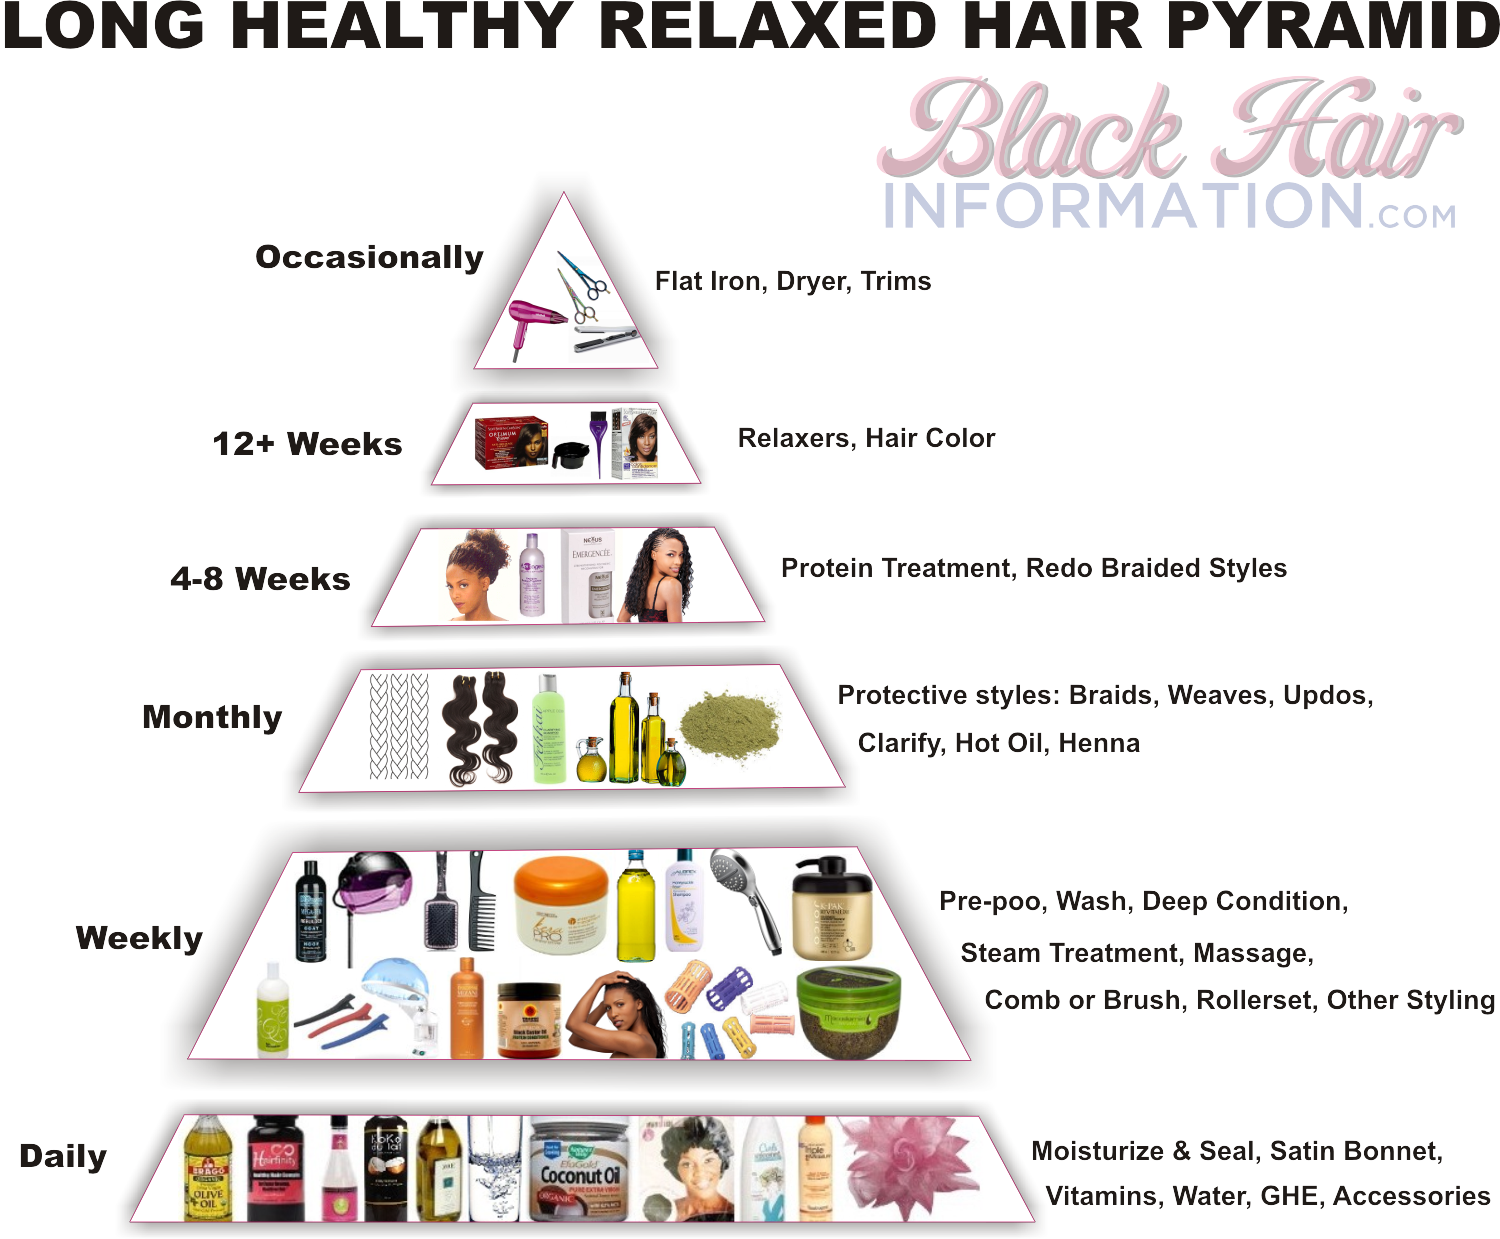 Magnificent Long Healthy Relaxed Hair Pyramid A Regimen At A Glance Hairstyle Inspiration Daily Dogsangcom